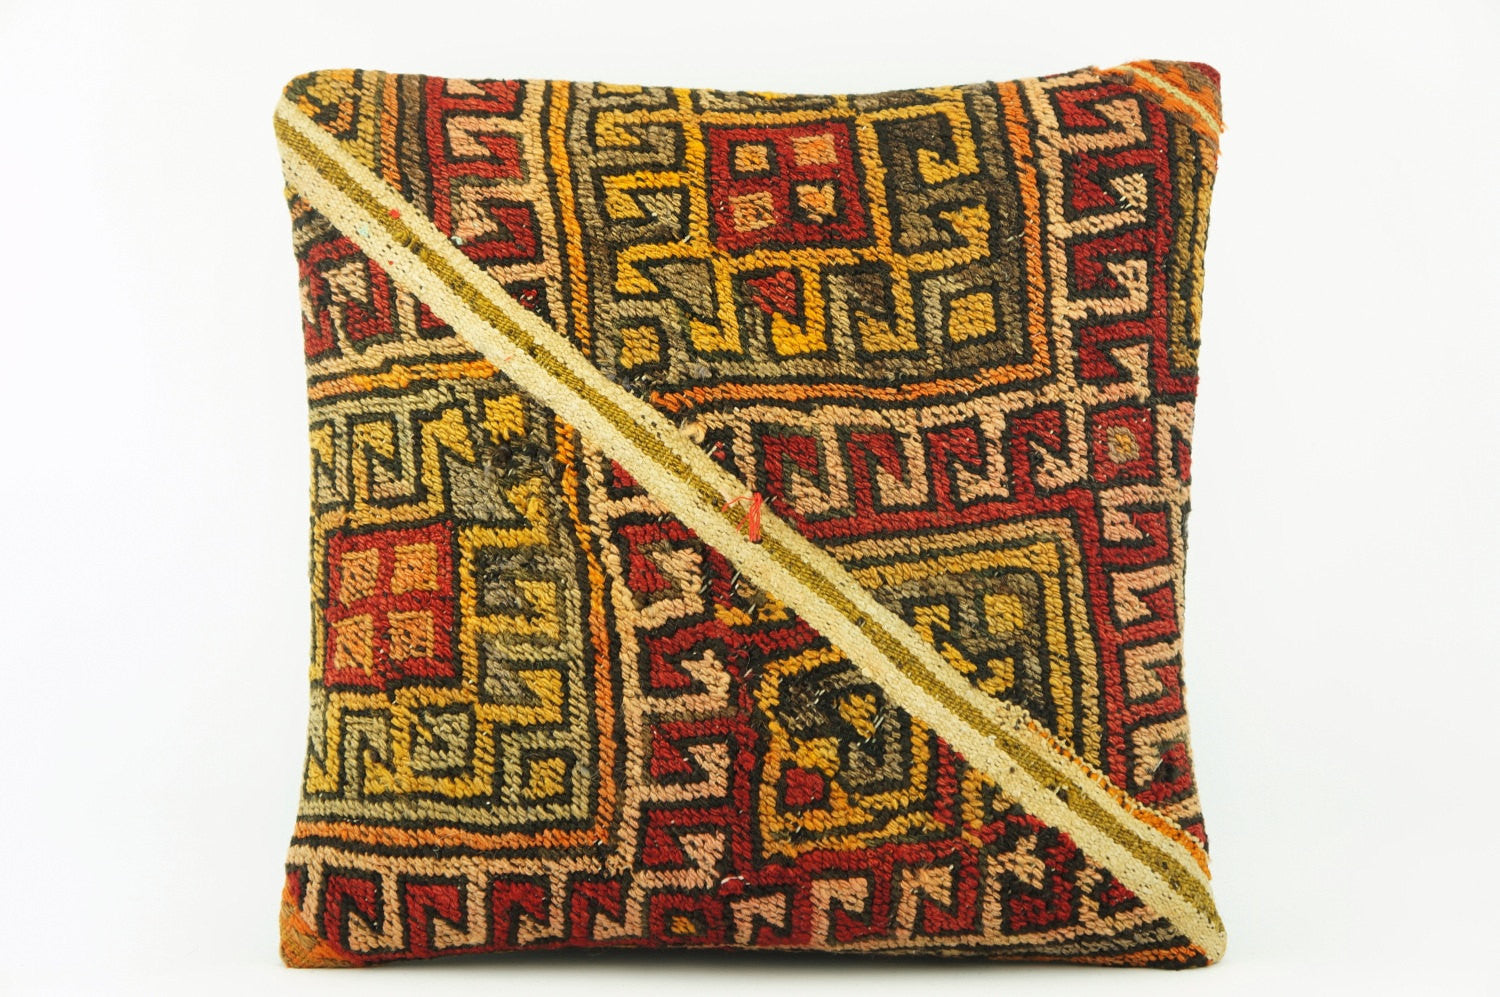 Oriantel  Kilim  pillow cover, bohemian kilim pillow, mid century  pillow , Patchwork pillow   2127